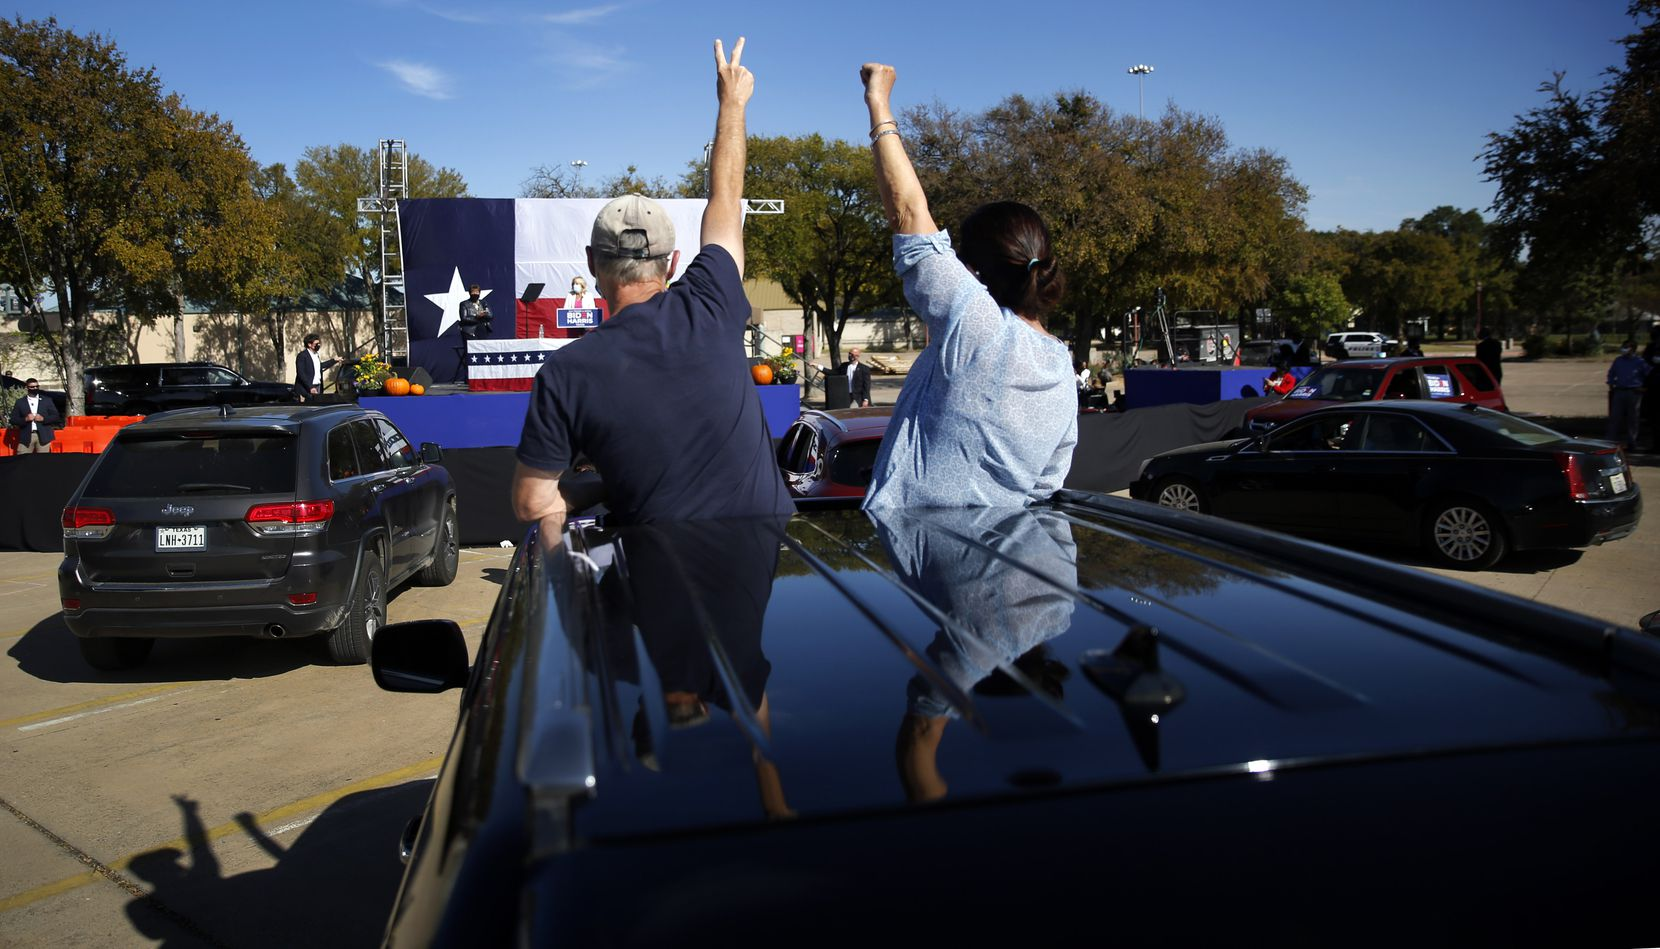 Through the sunroof of their vehicle, Biden campaign staffer Teri Ervin (right) and her husband Tom Ervin of Dallas cheer former second lady Jill Biden who made a drive-in campaign rally speech on behalf of her husband and Democratic Presidential candidate Joe Biden, at Fair Park in Dallas, Tuesday, October 13, 2020. It was the first day of early voting in Texas.